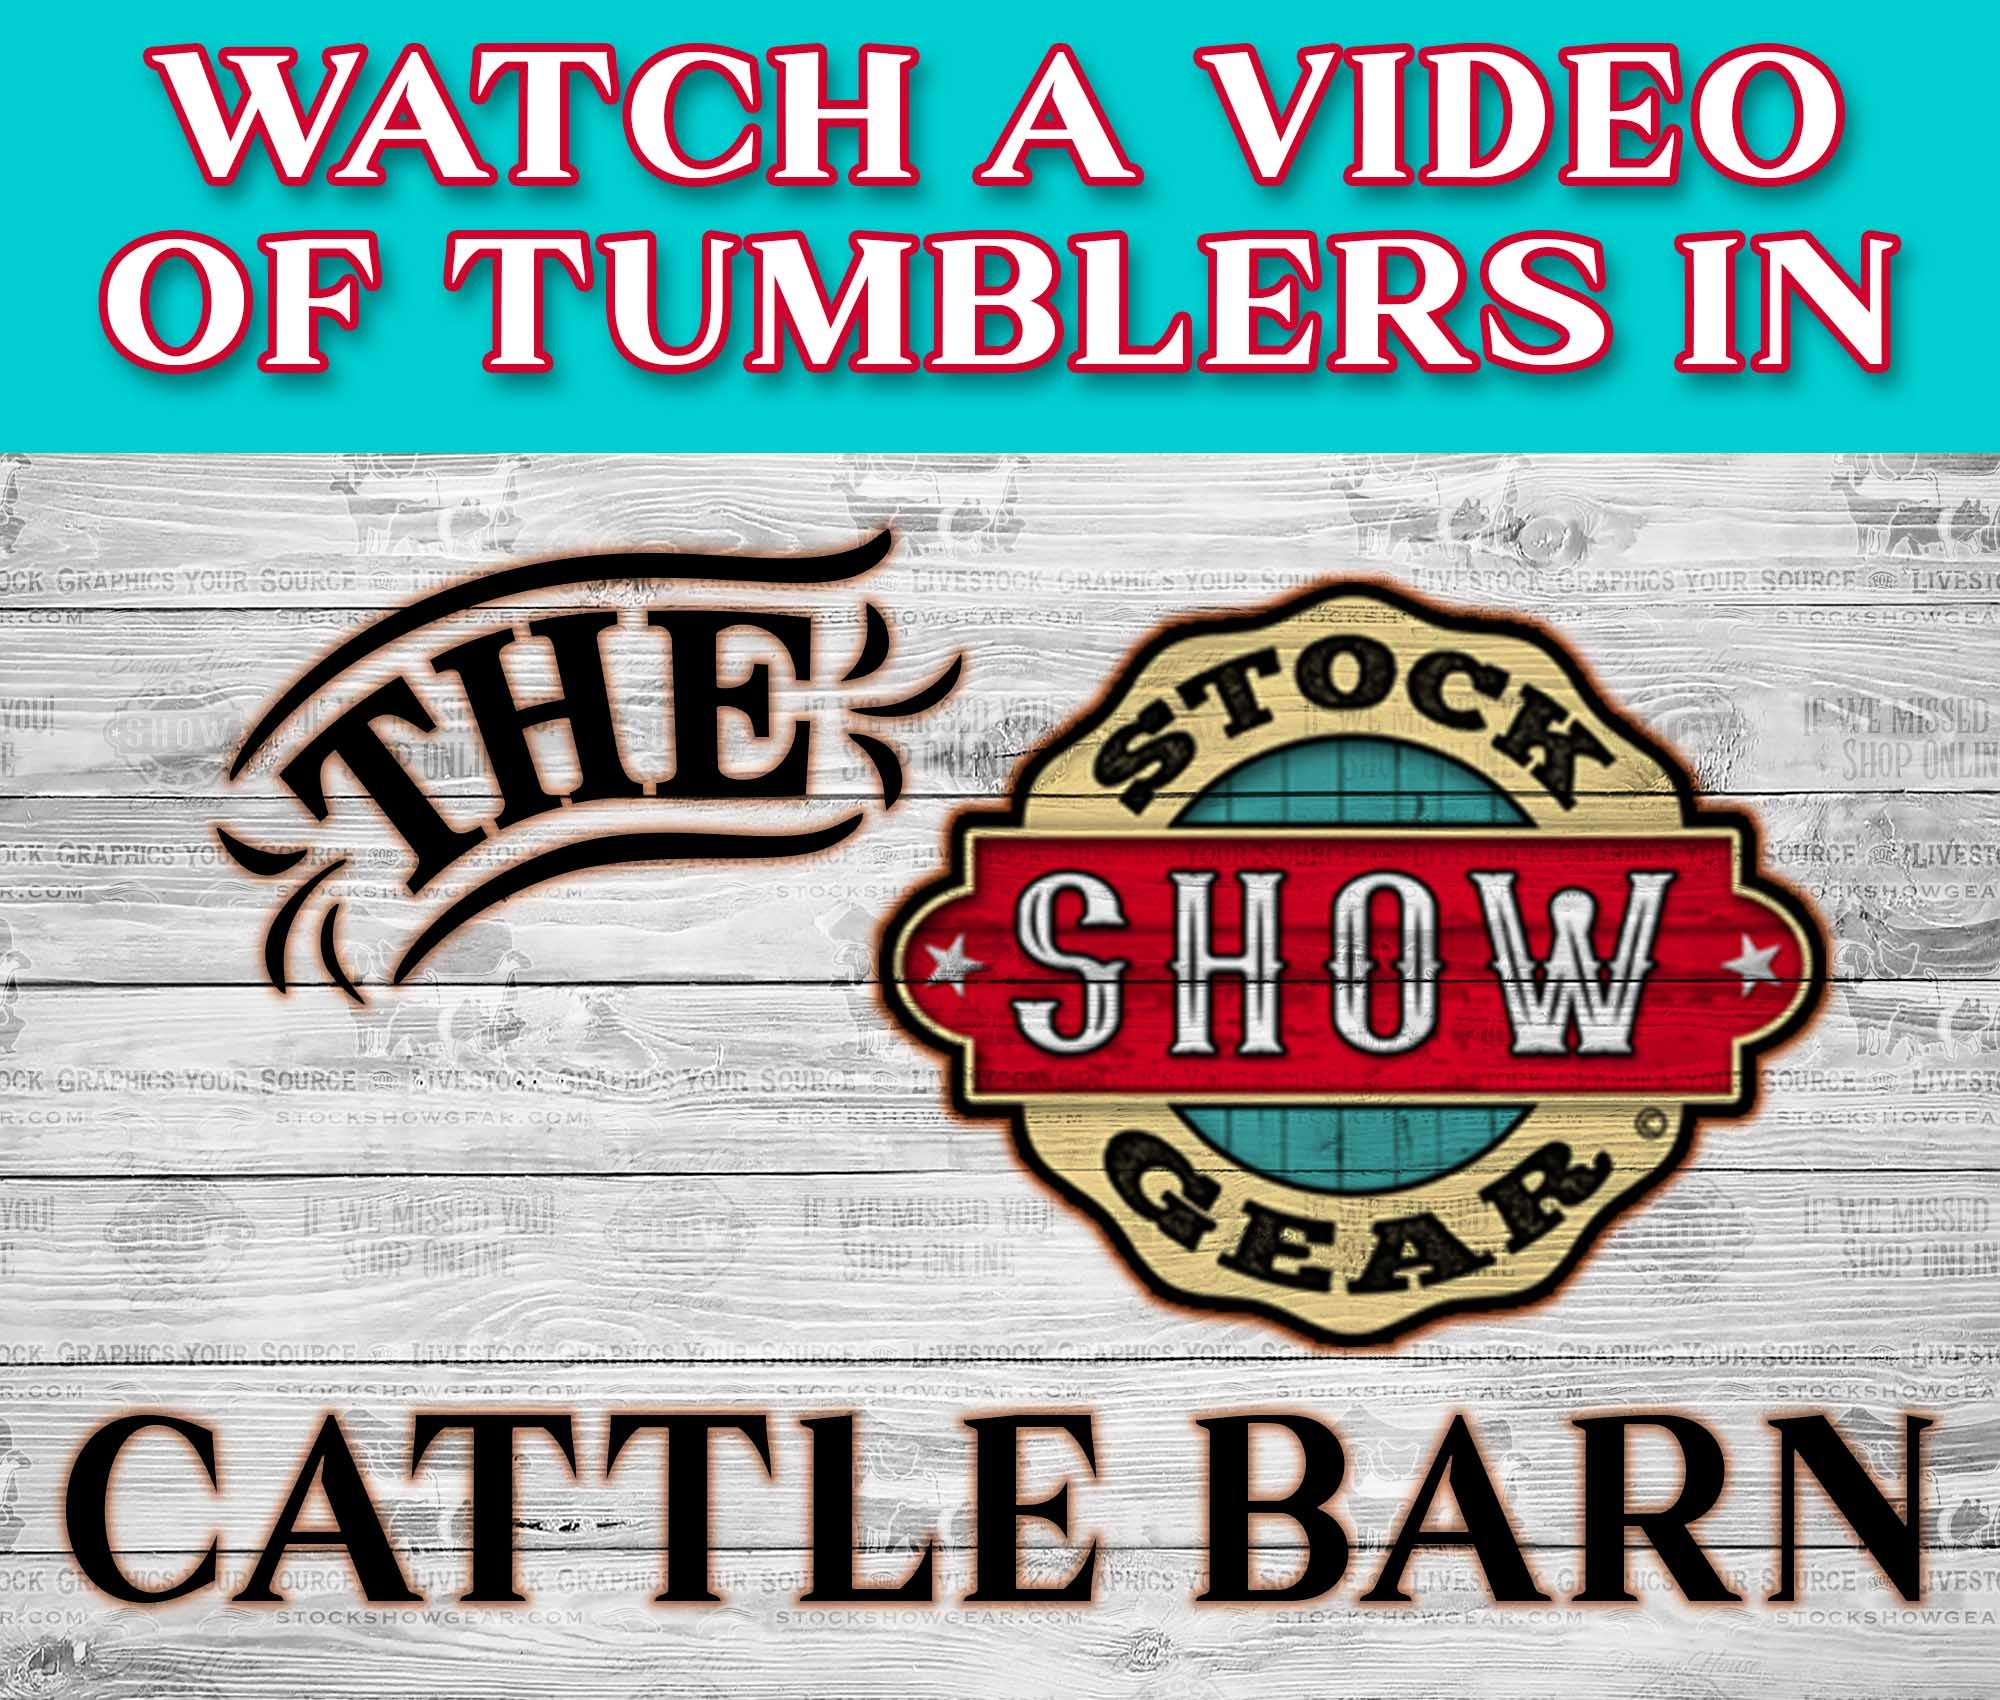 Video-Cattle Barn Tumblers - Watch Now!